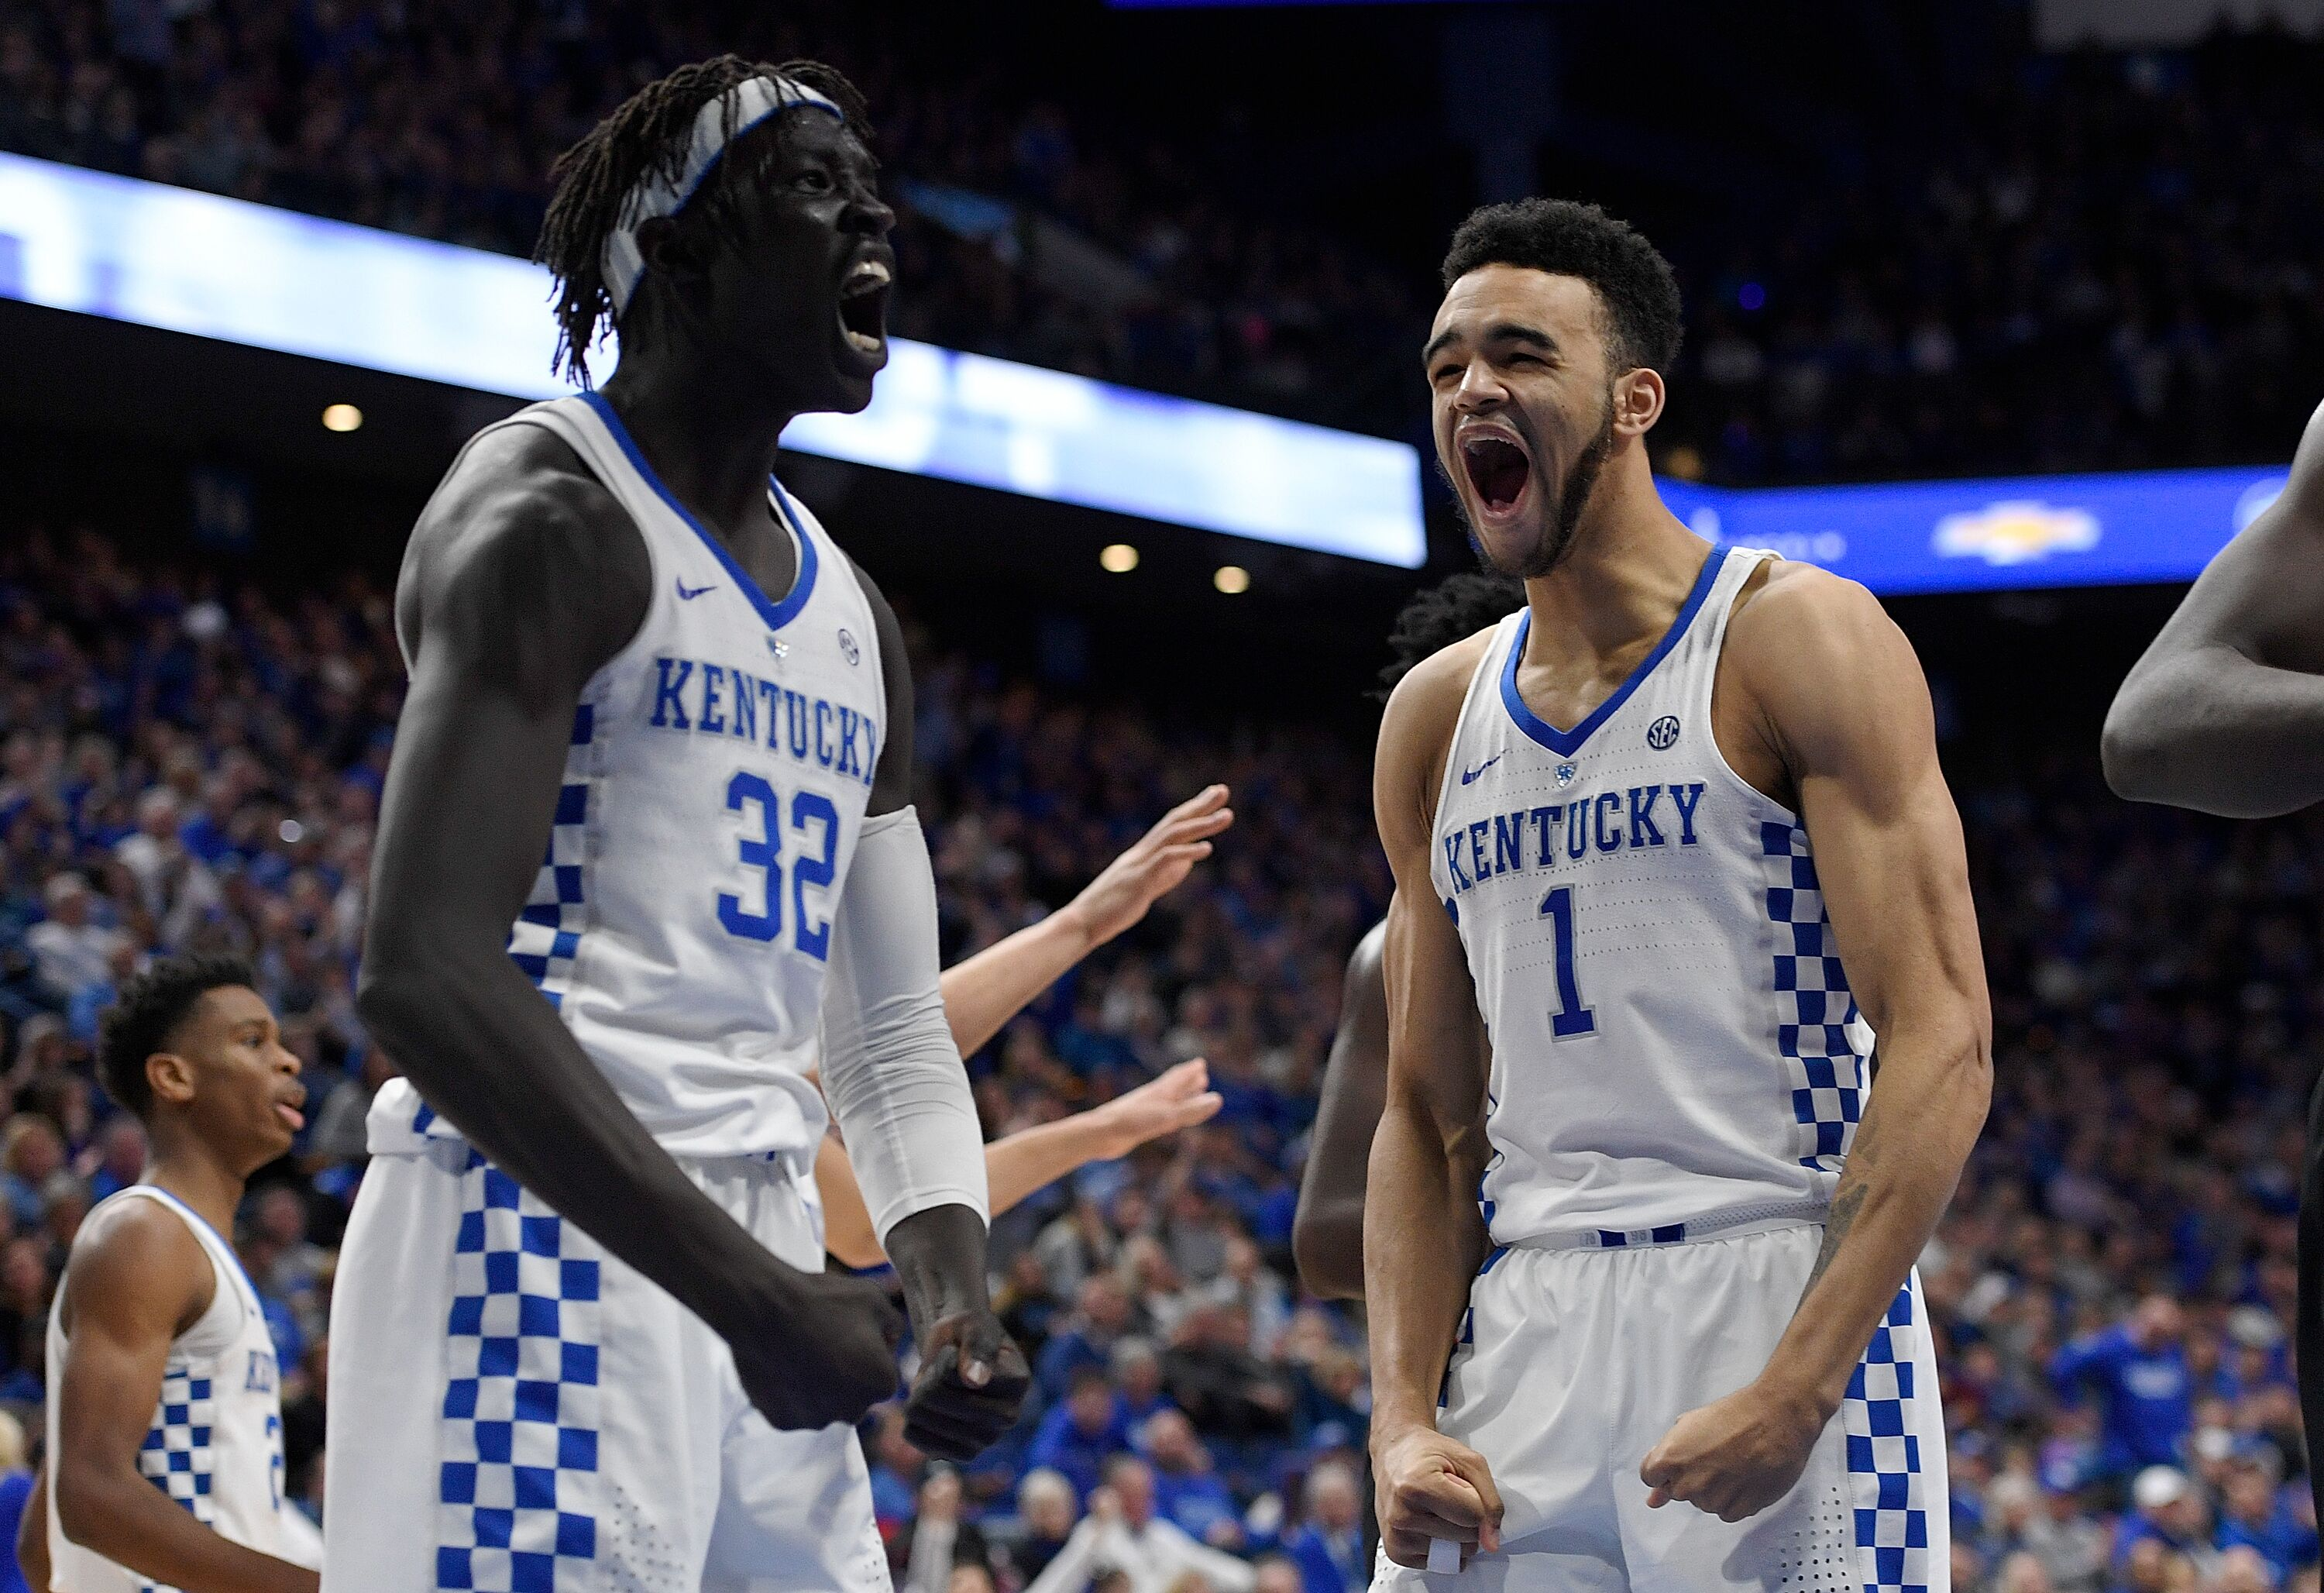 Kentucky Basketball: Kentucky Basketball: What's Wrong With The Wildcats?